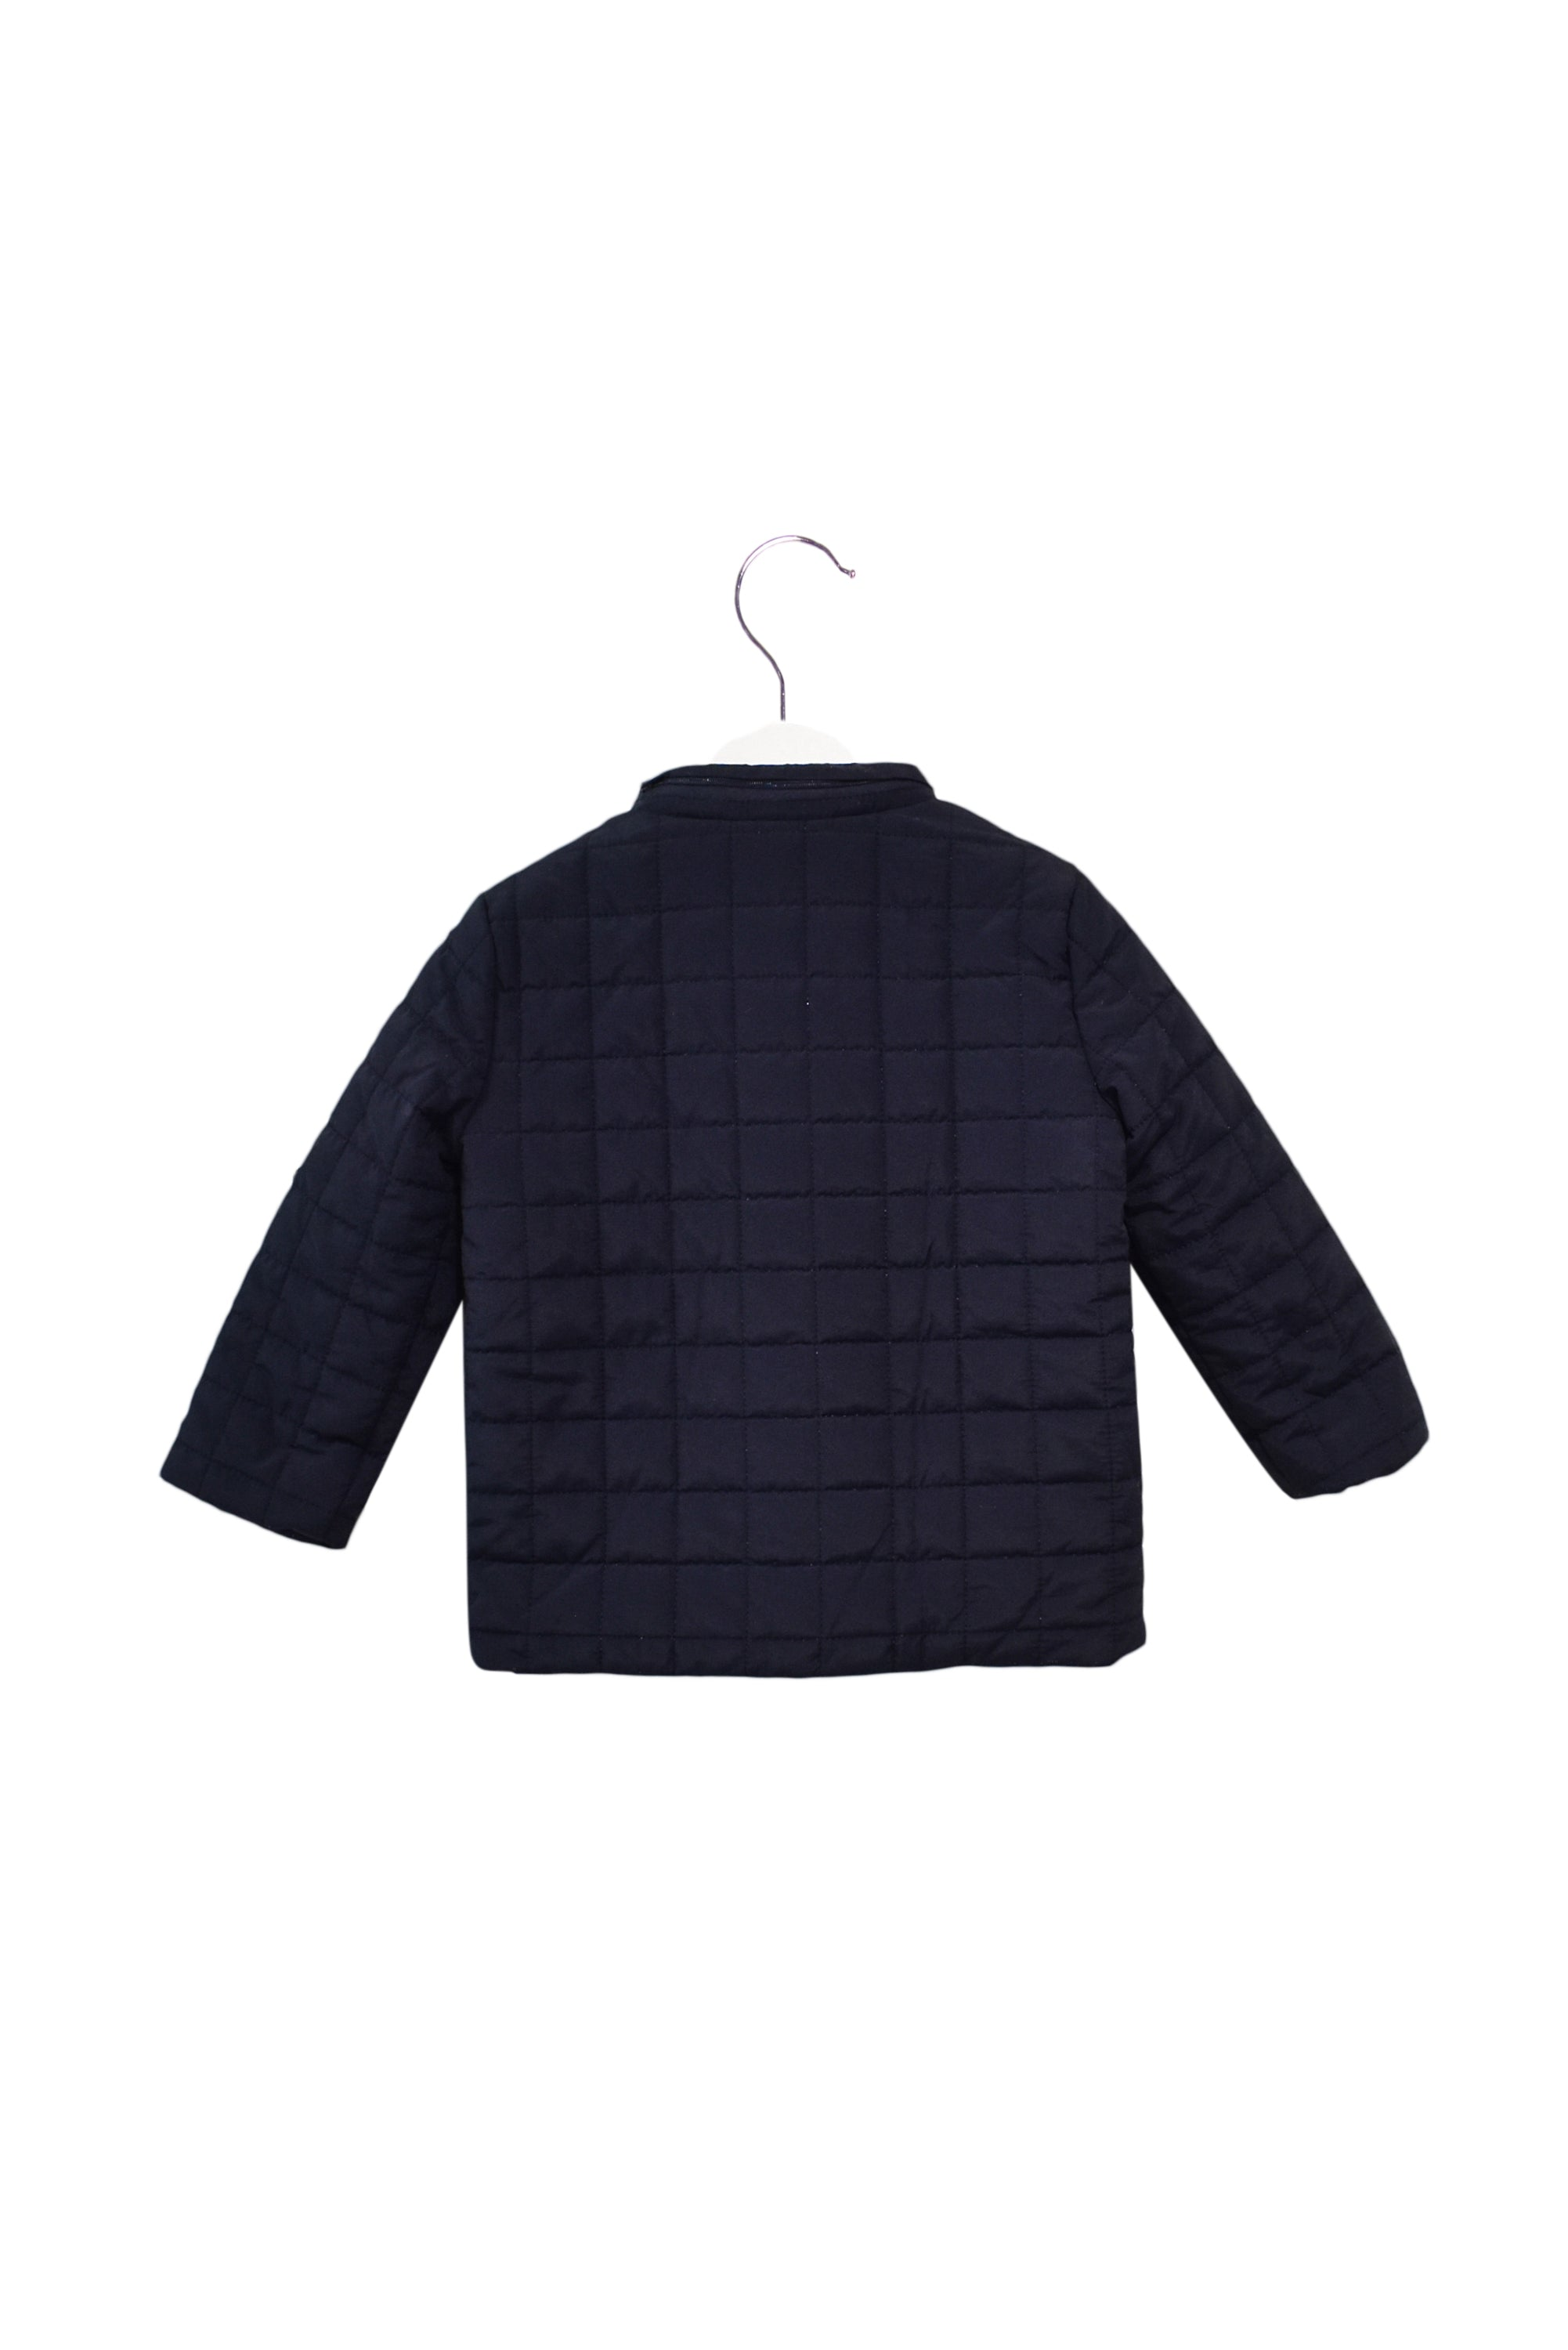 10028246B Jacadi Kids~Jacket 4T at Retykle